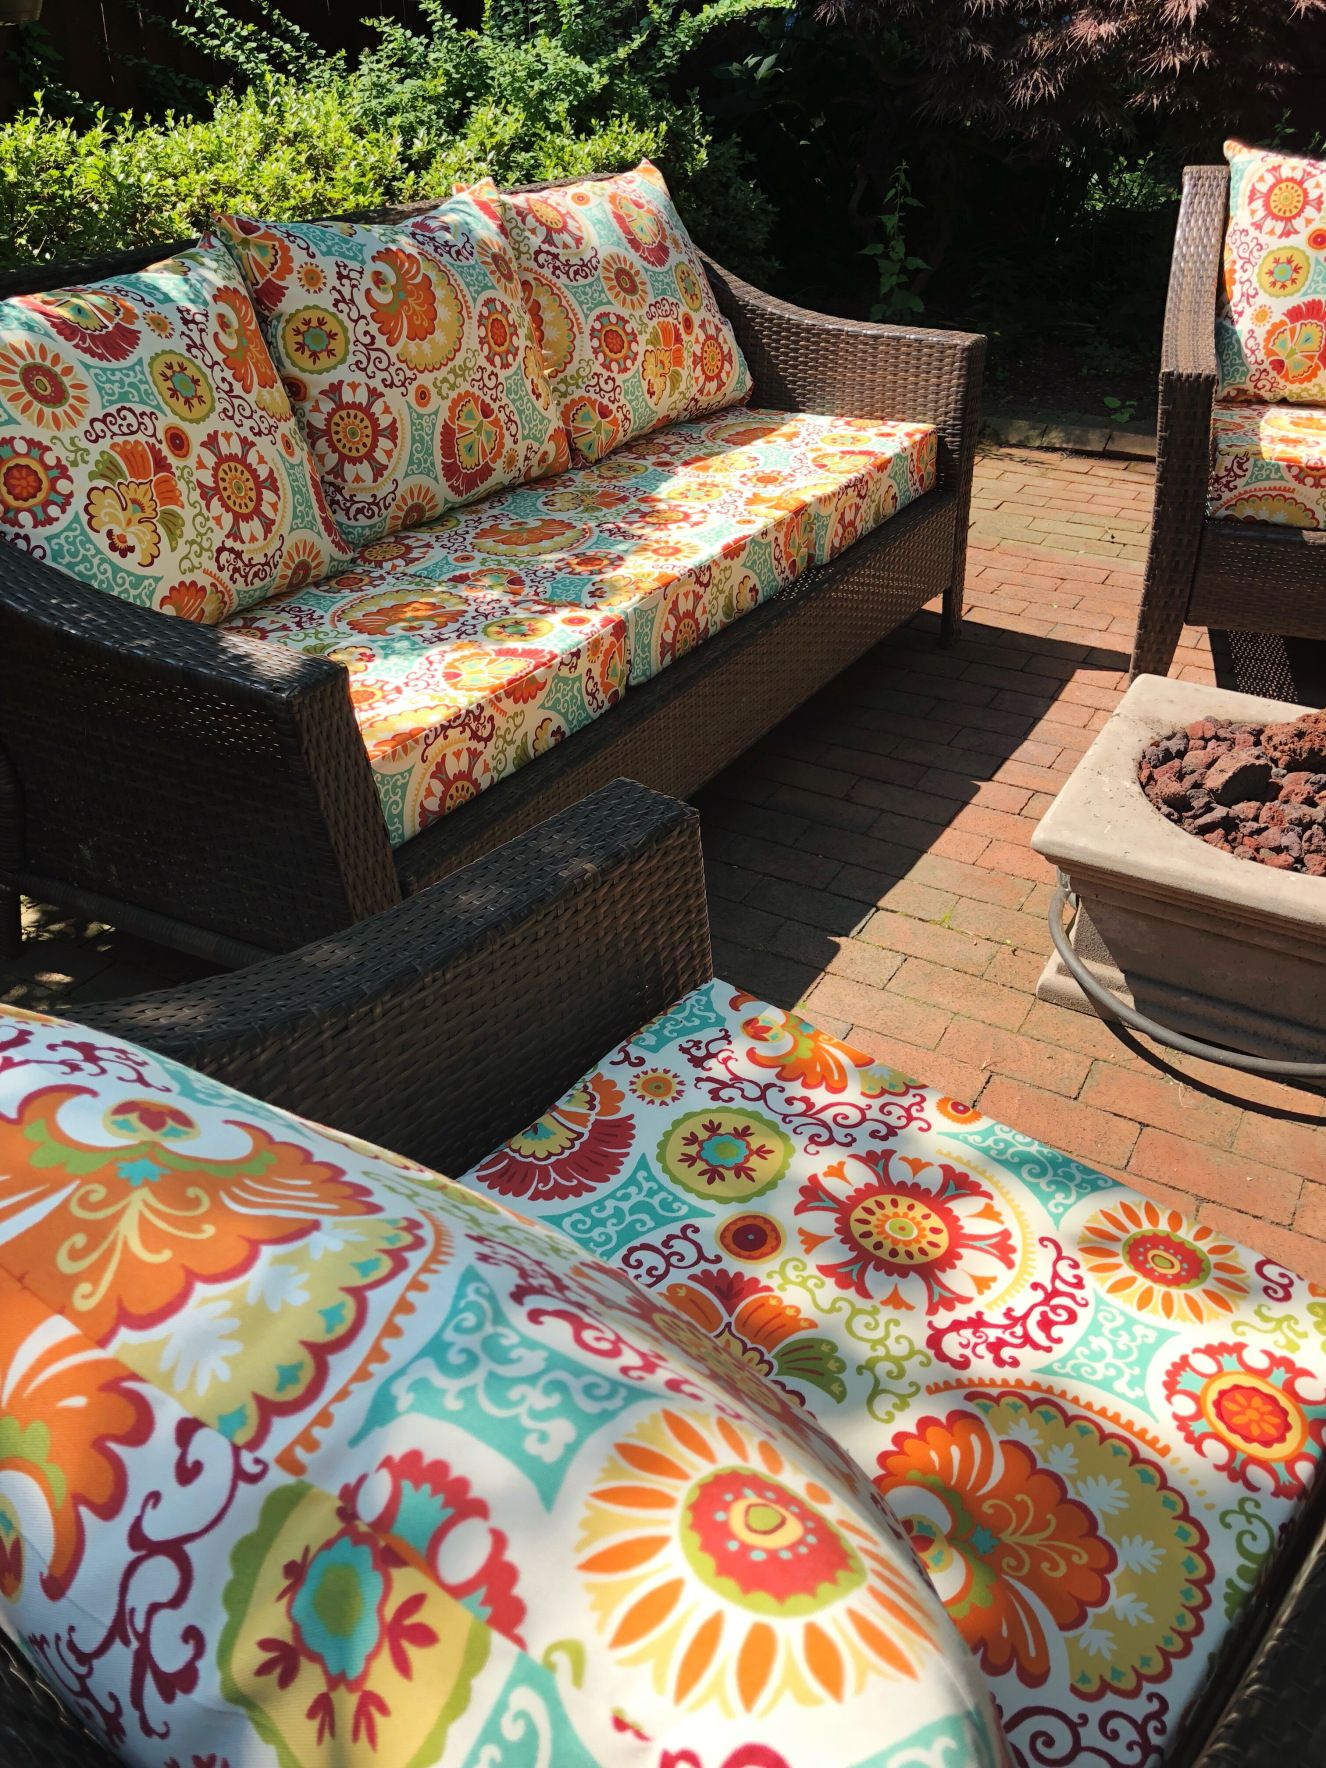 Handmade Outdoor Cushions Tips To Make Your Own Trish Stitched Patio Cushions Outdoor Pallet Furniture Outdoor Outdoor Cushions